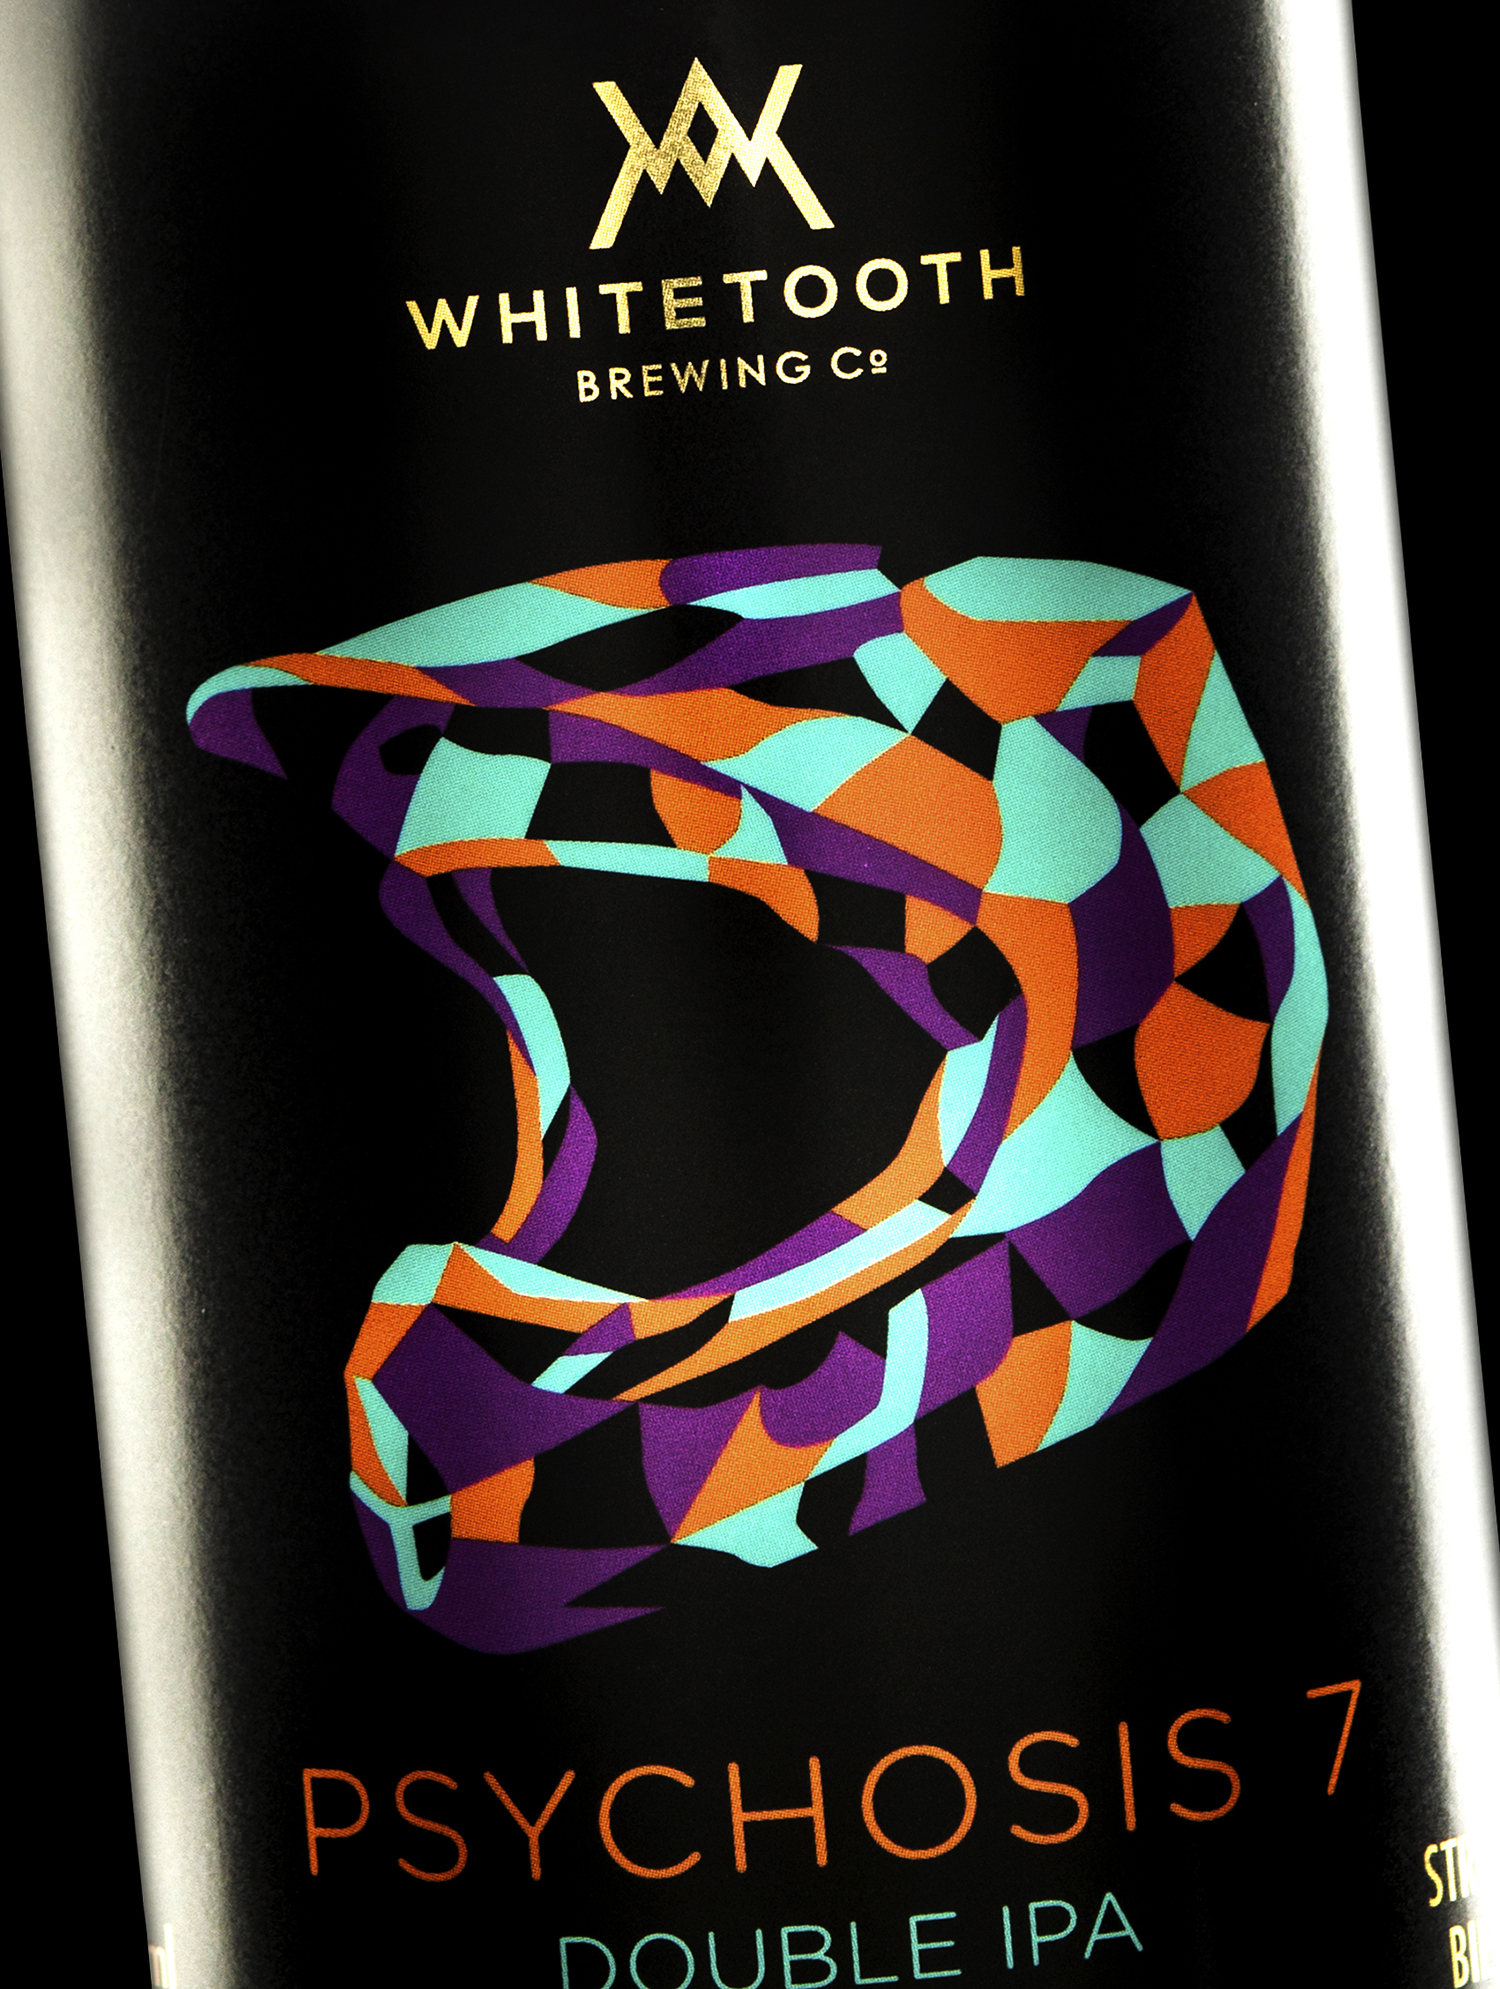 Branding and Packaging Design for Whitetooth Brewing's Psychosis 7 Double IPA